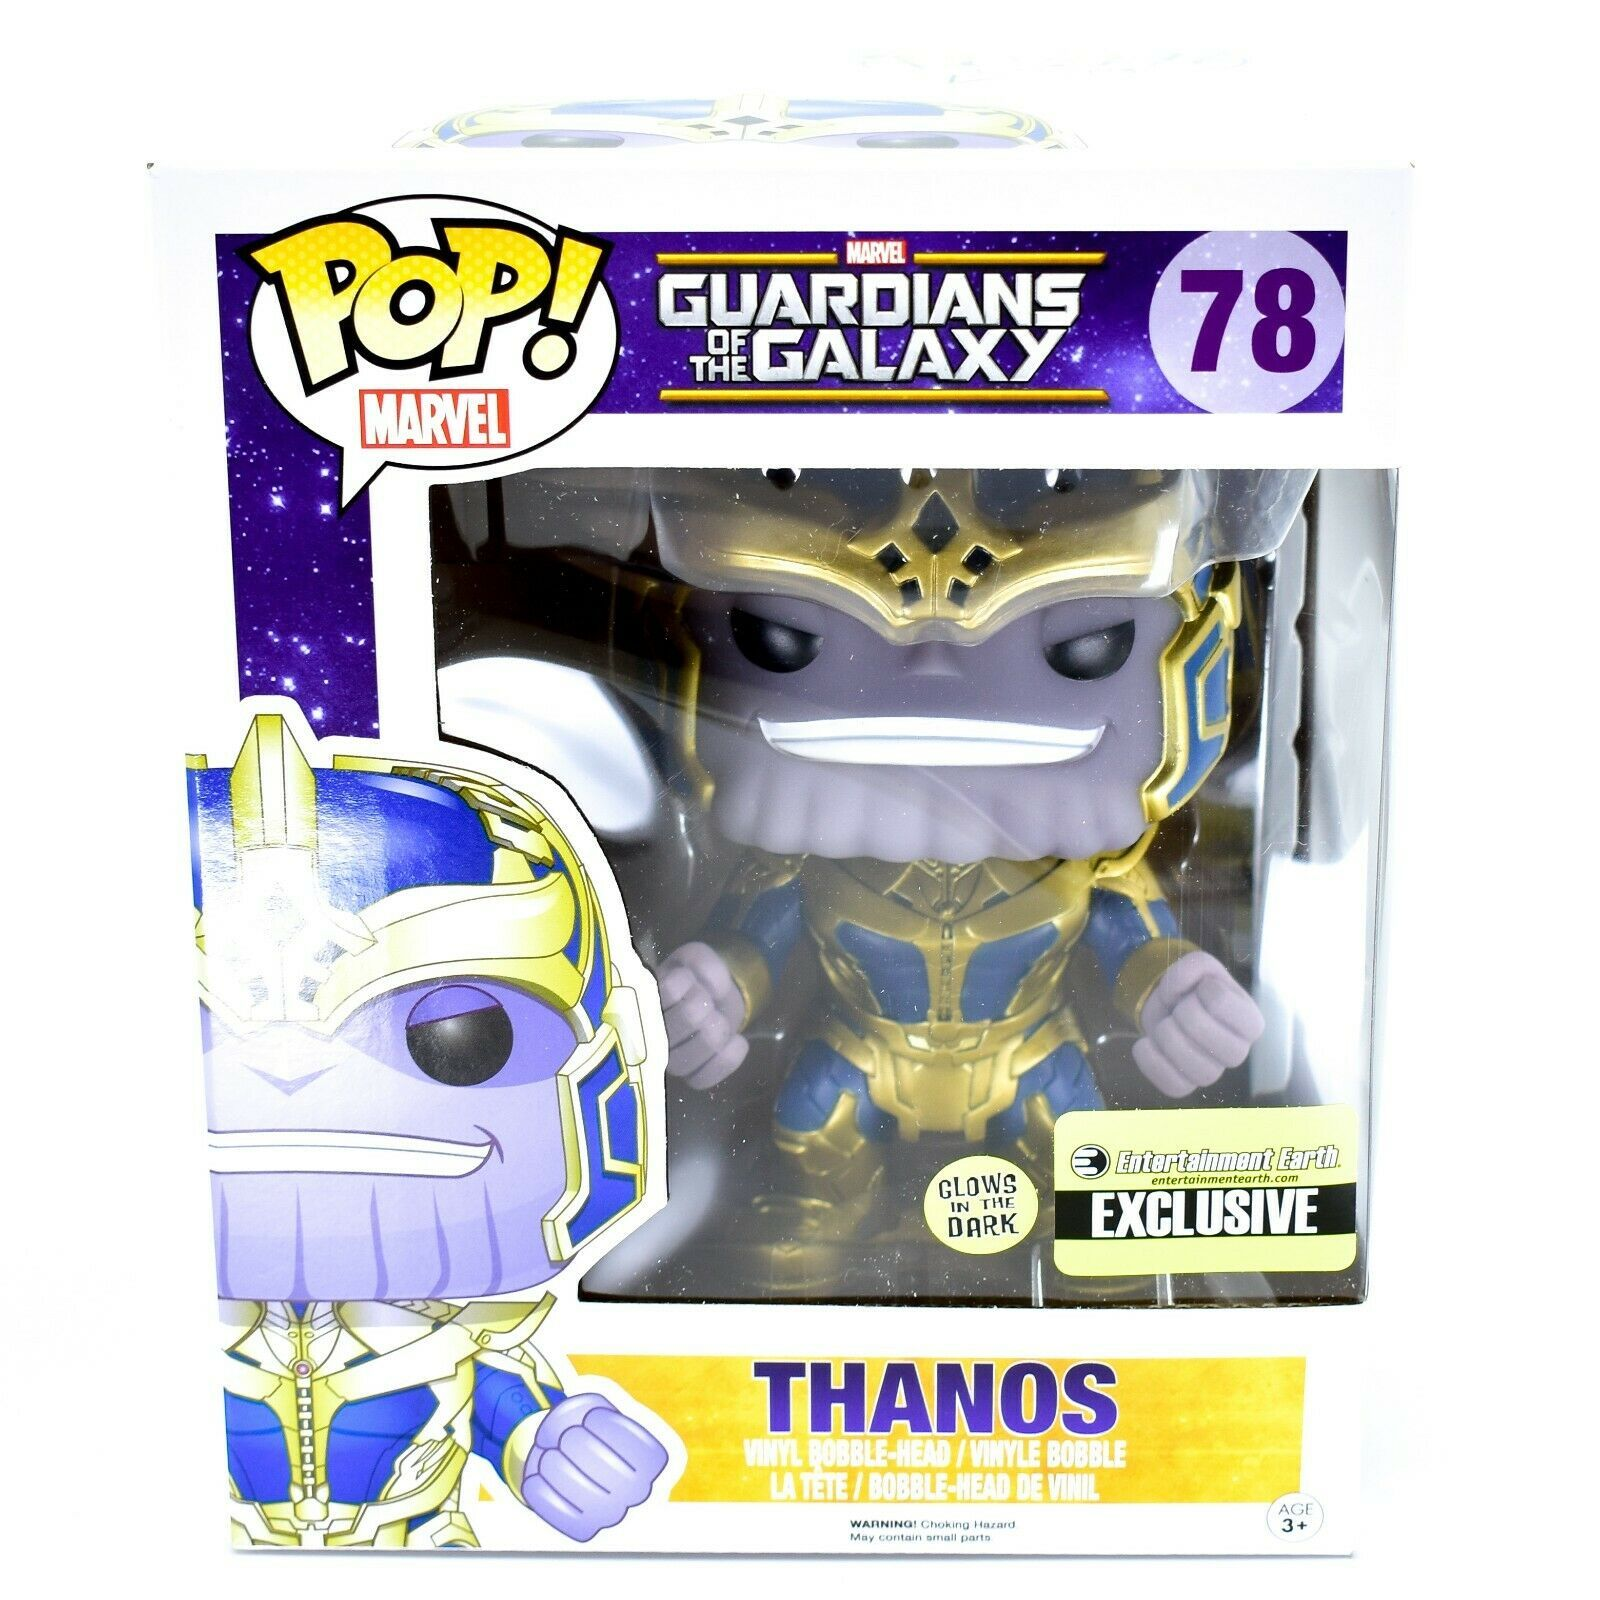 "Funko Pop! Marvel Thanos 6"" Entertainment Earth Glow in Dark Exclusive Figure"